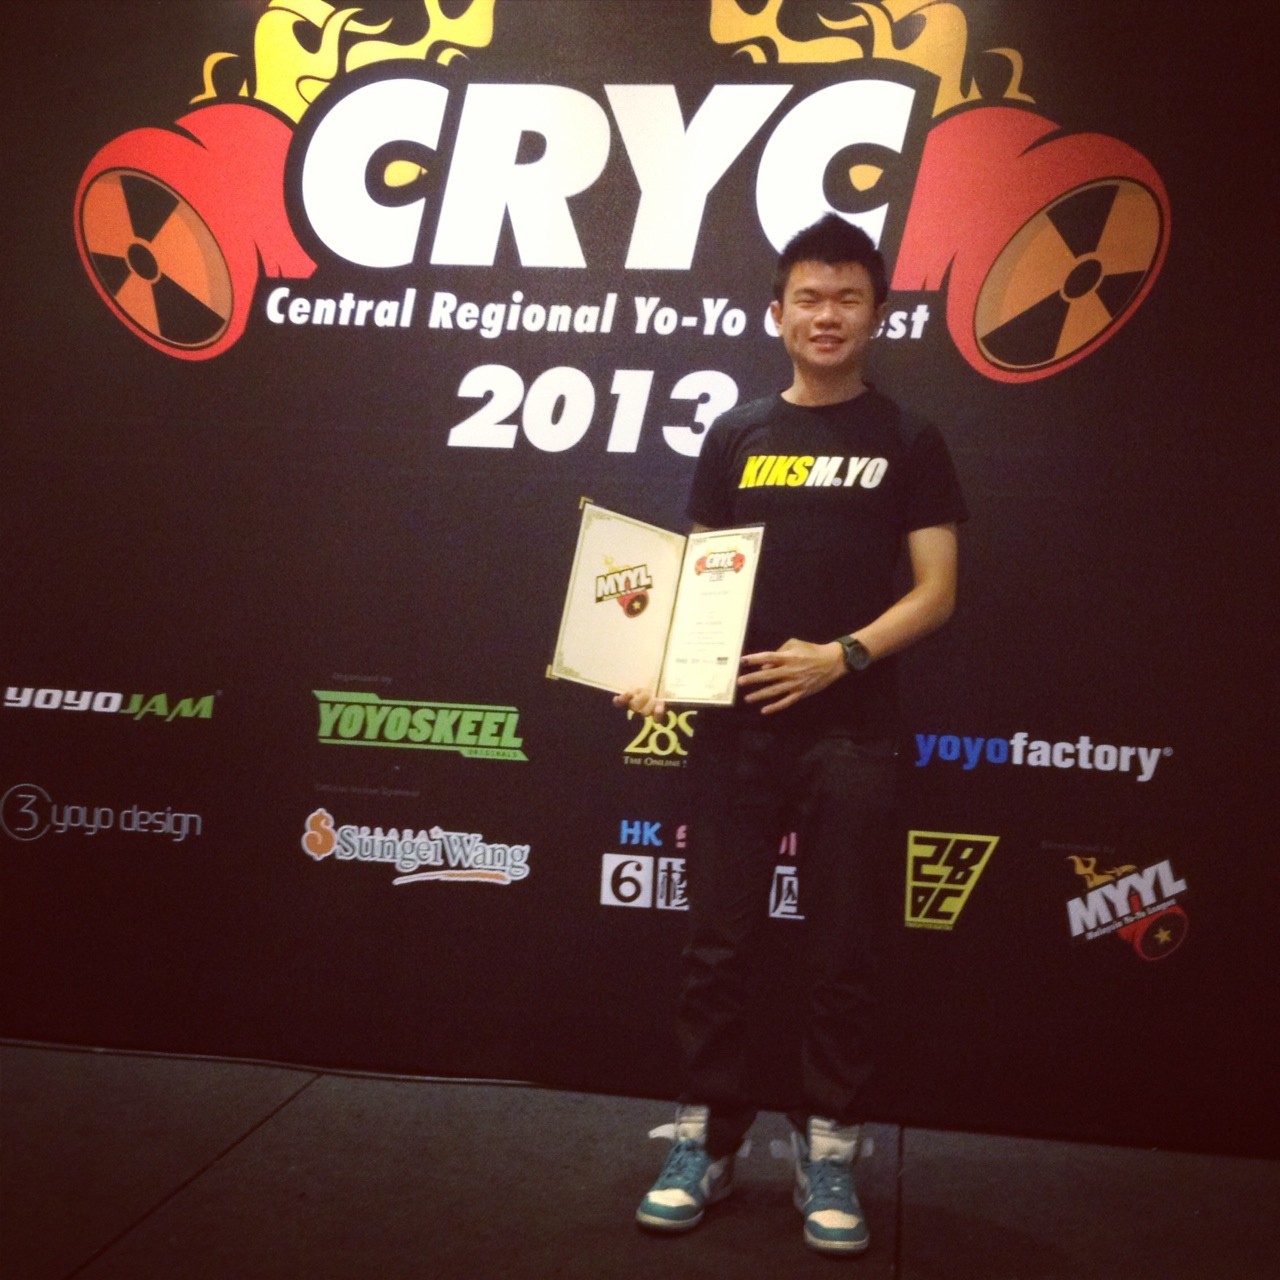 I WON CRYC 2013. SG WANG KL